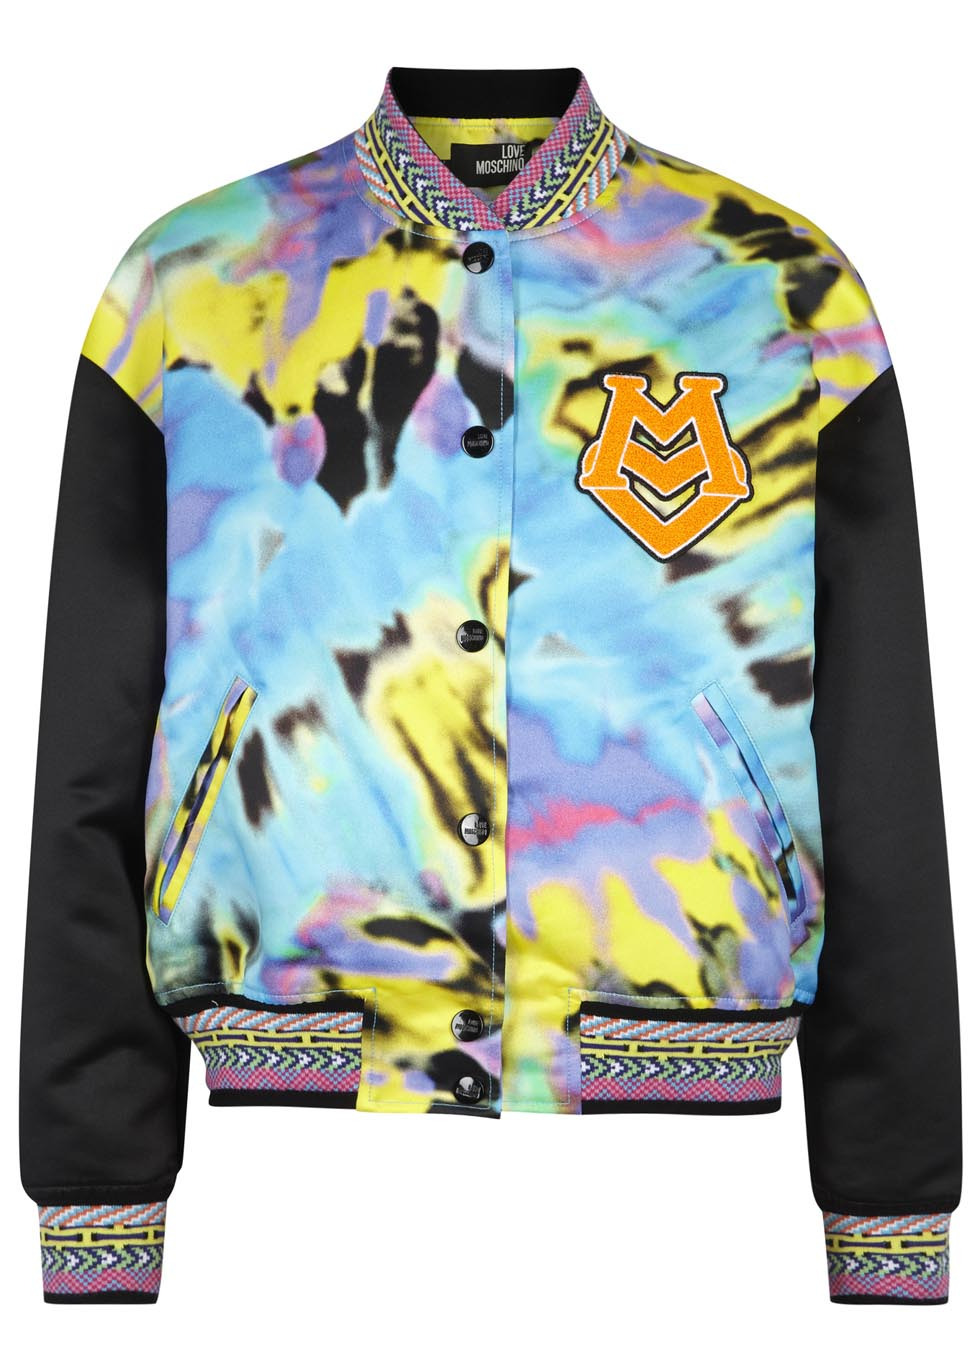 87a9086b0d Love Moschino Psychedelic Print Satin Twill Bomber Jacket in Yellow ...